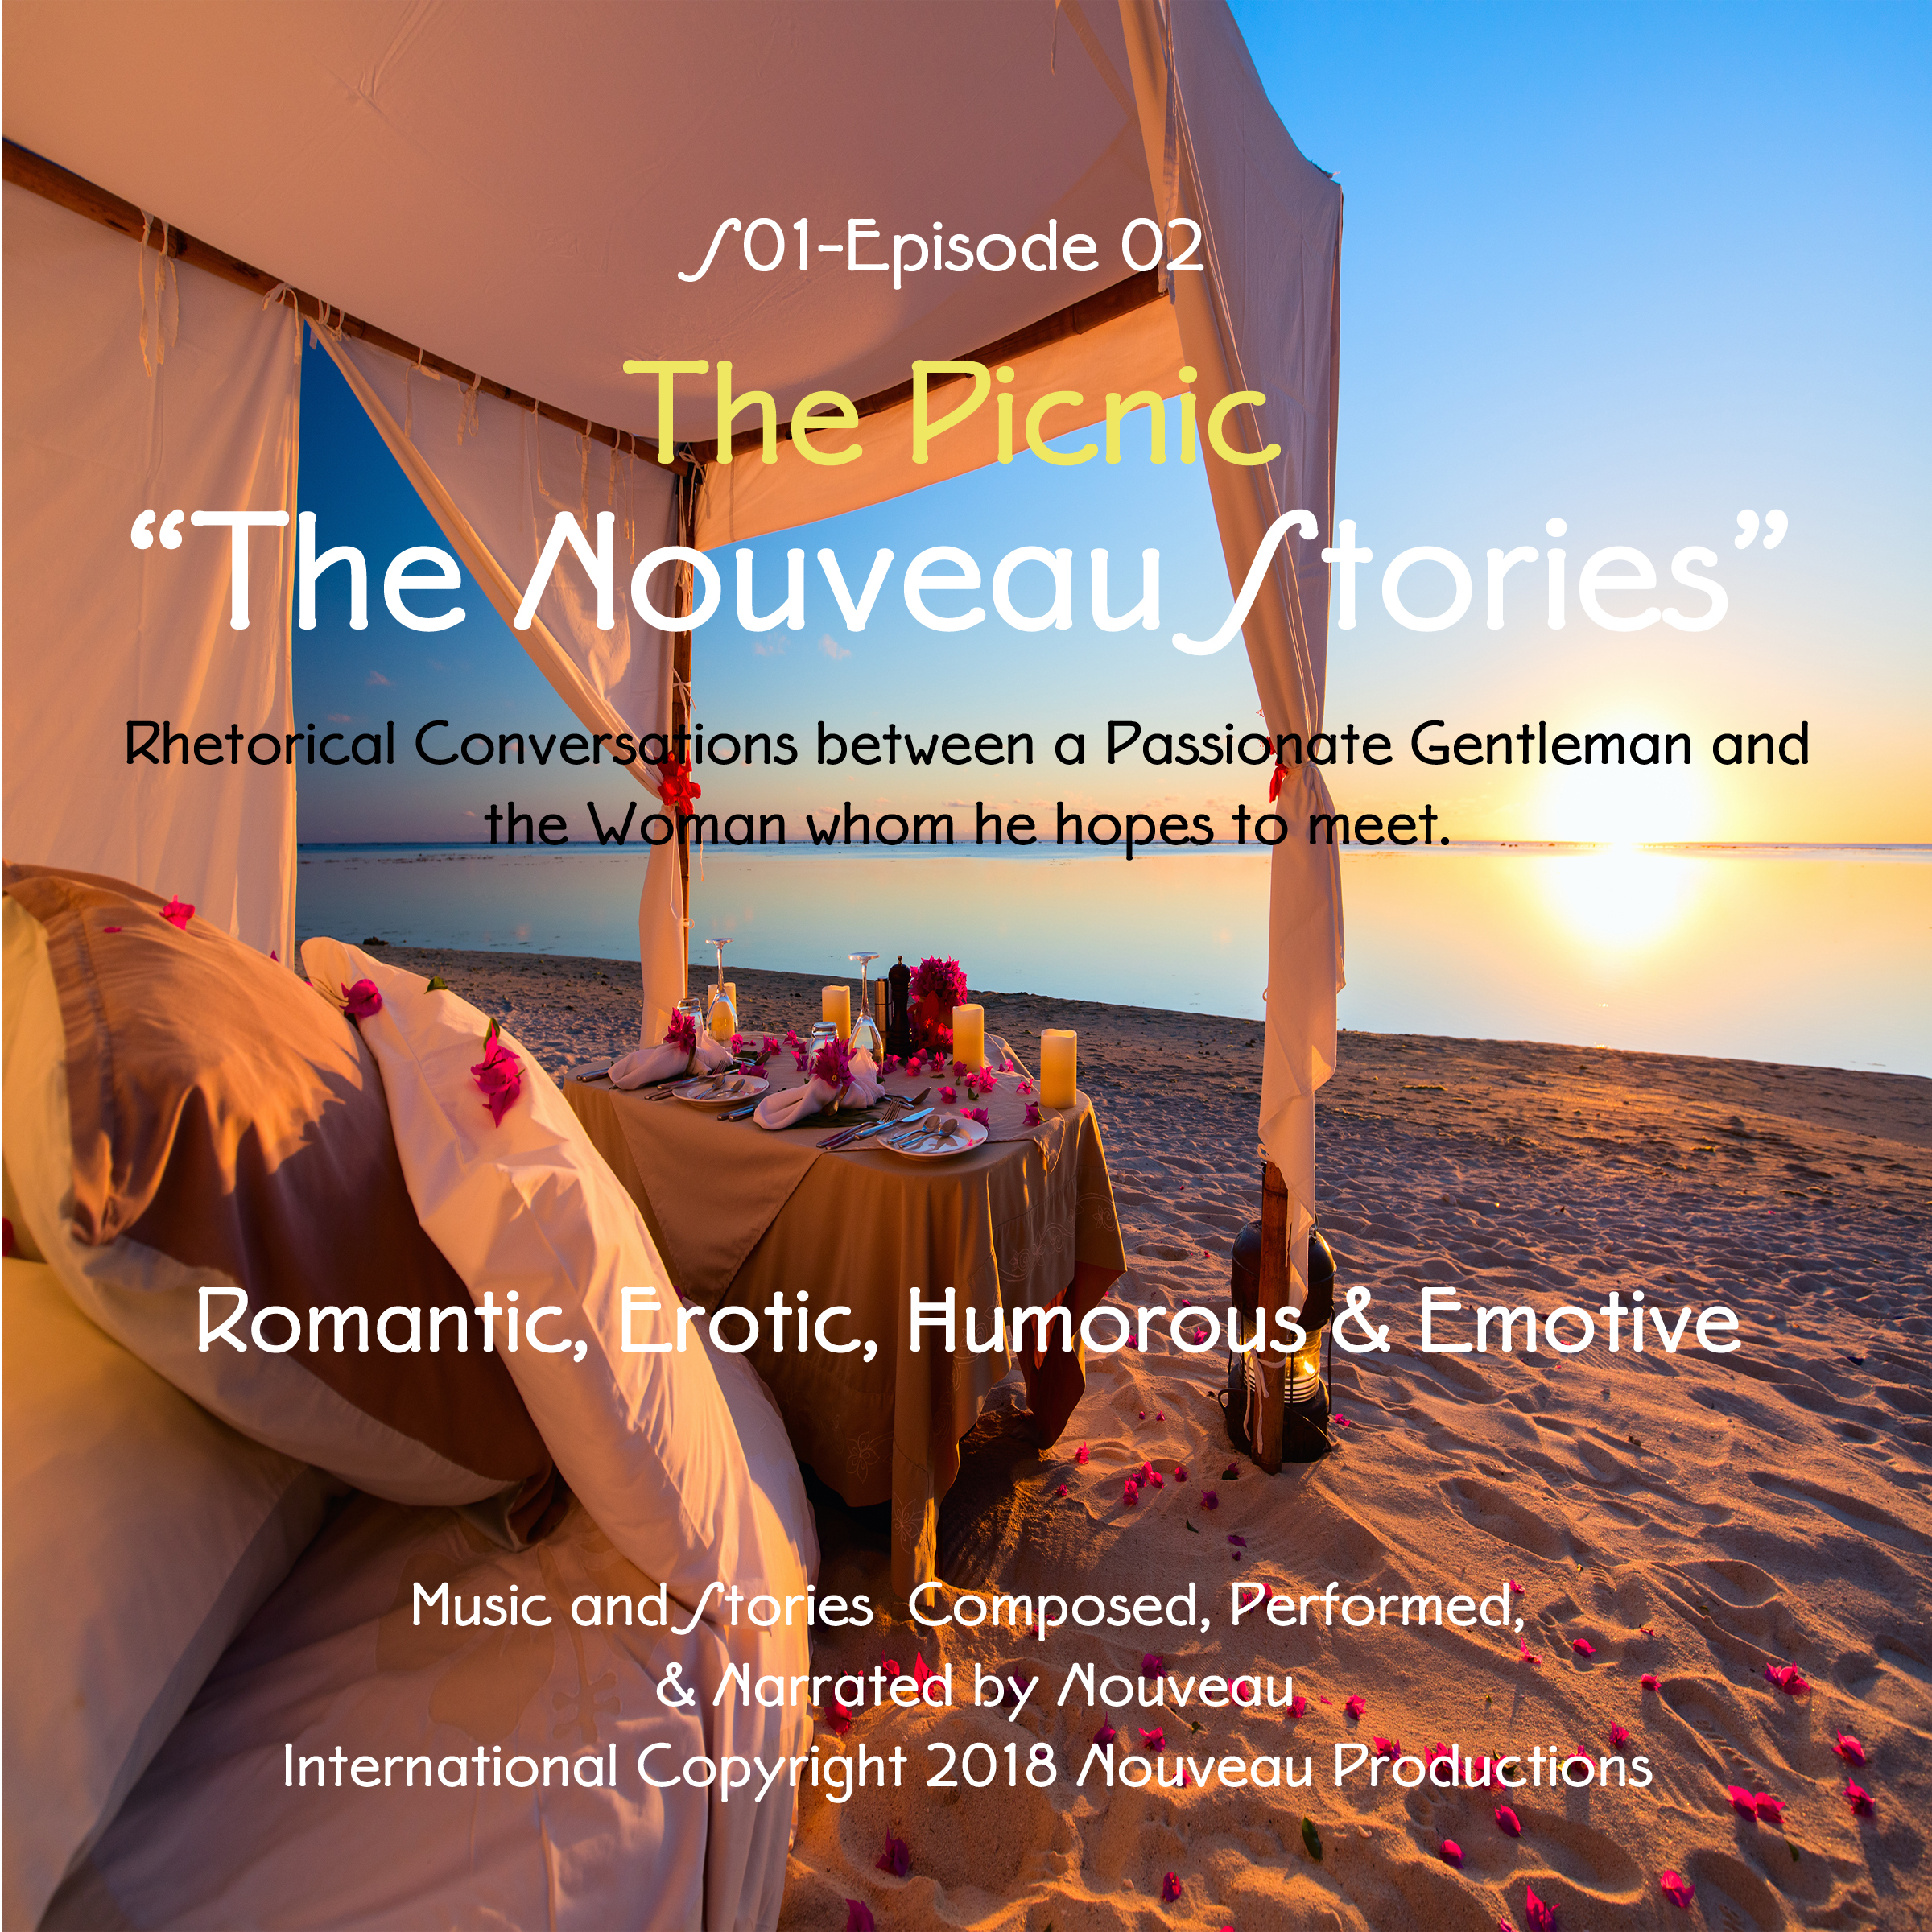 Printable 'The Nouveau Stories' (Series One-Episode -02) 'The Picnic' Audiobook Cover Art